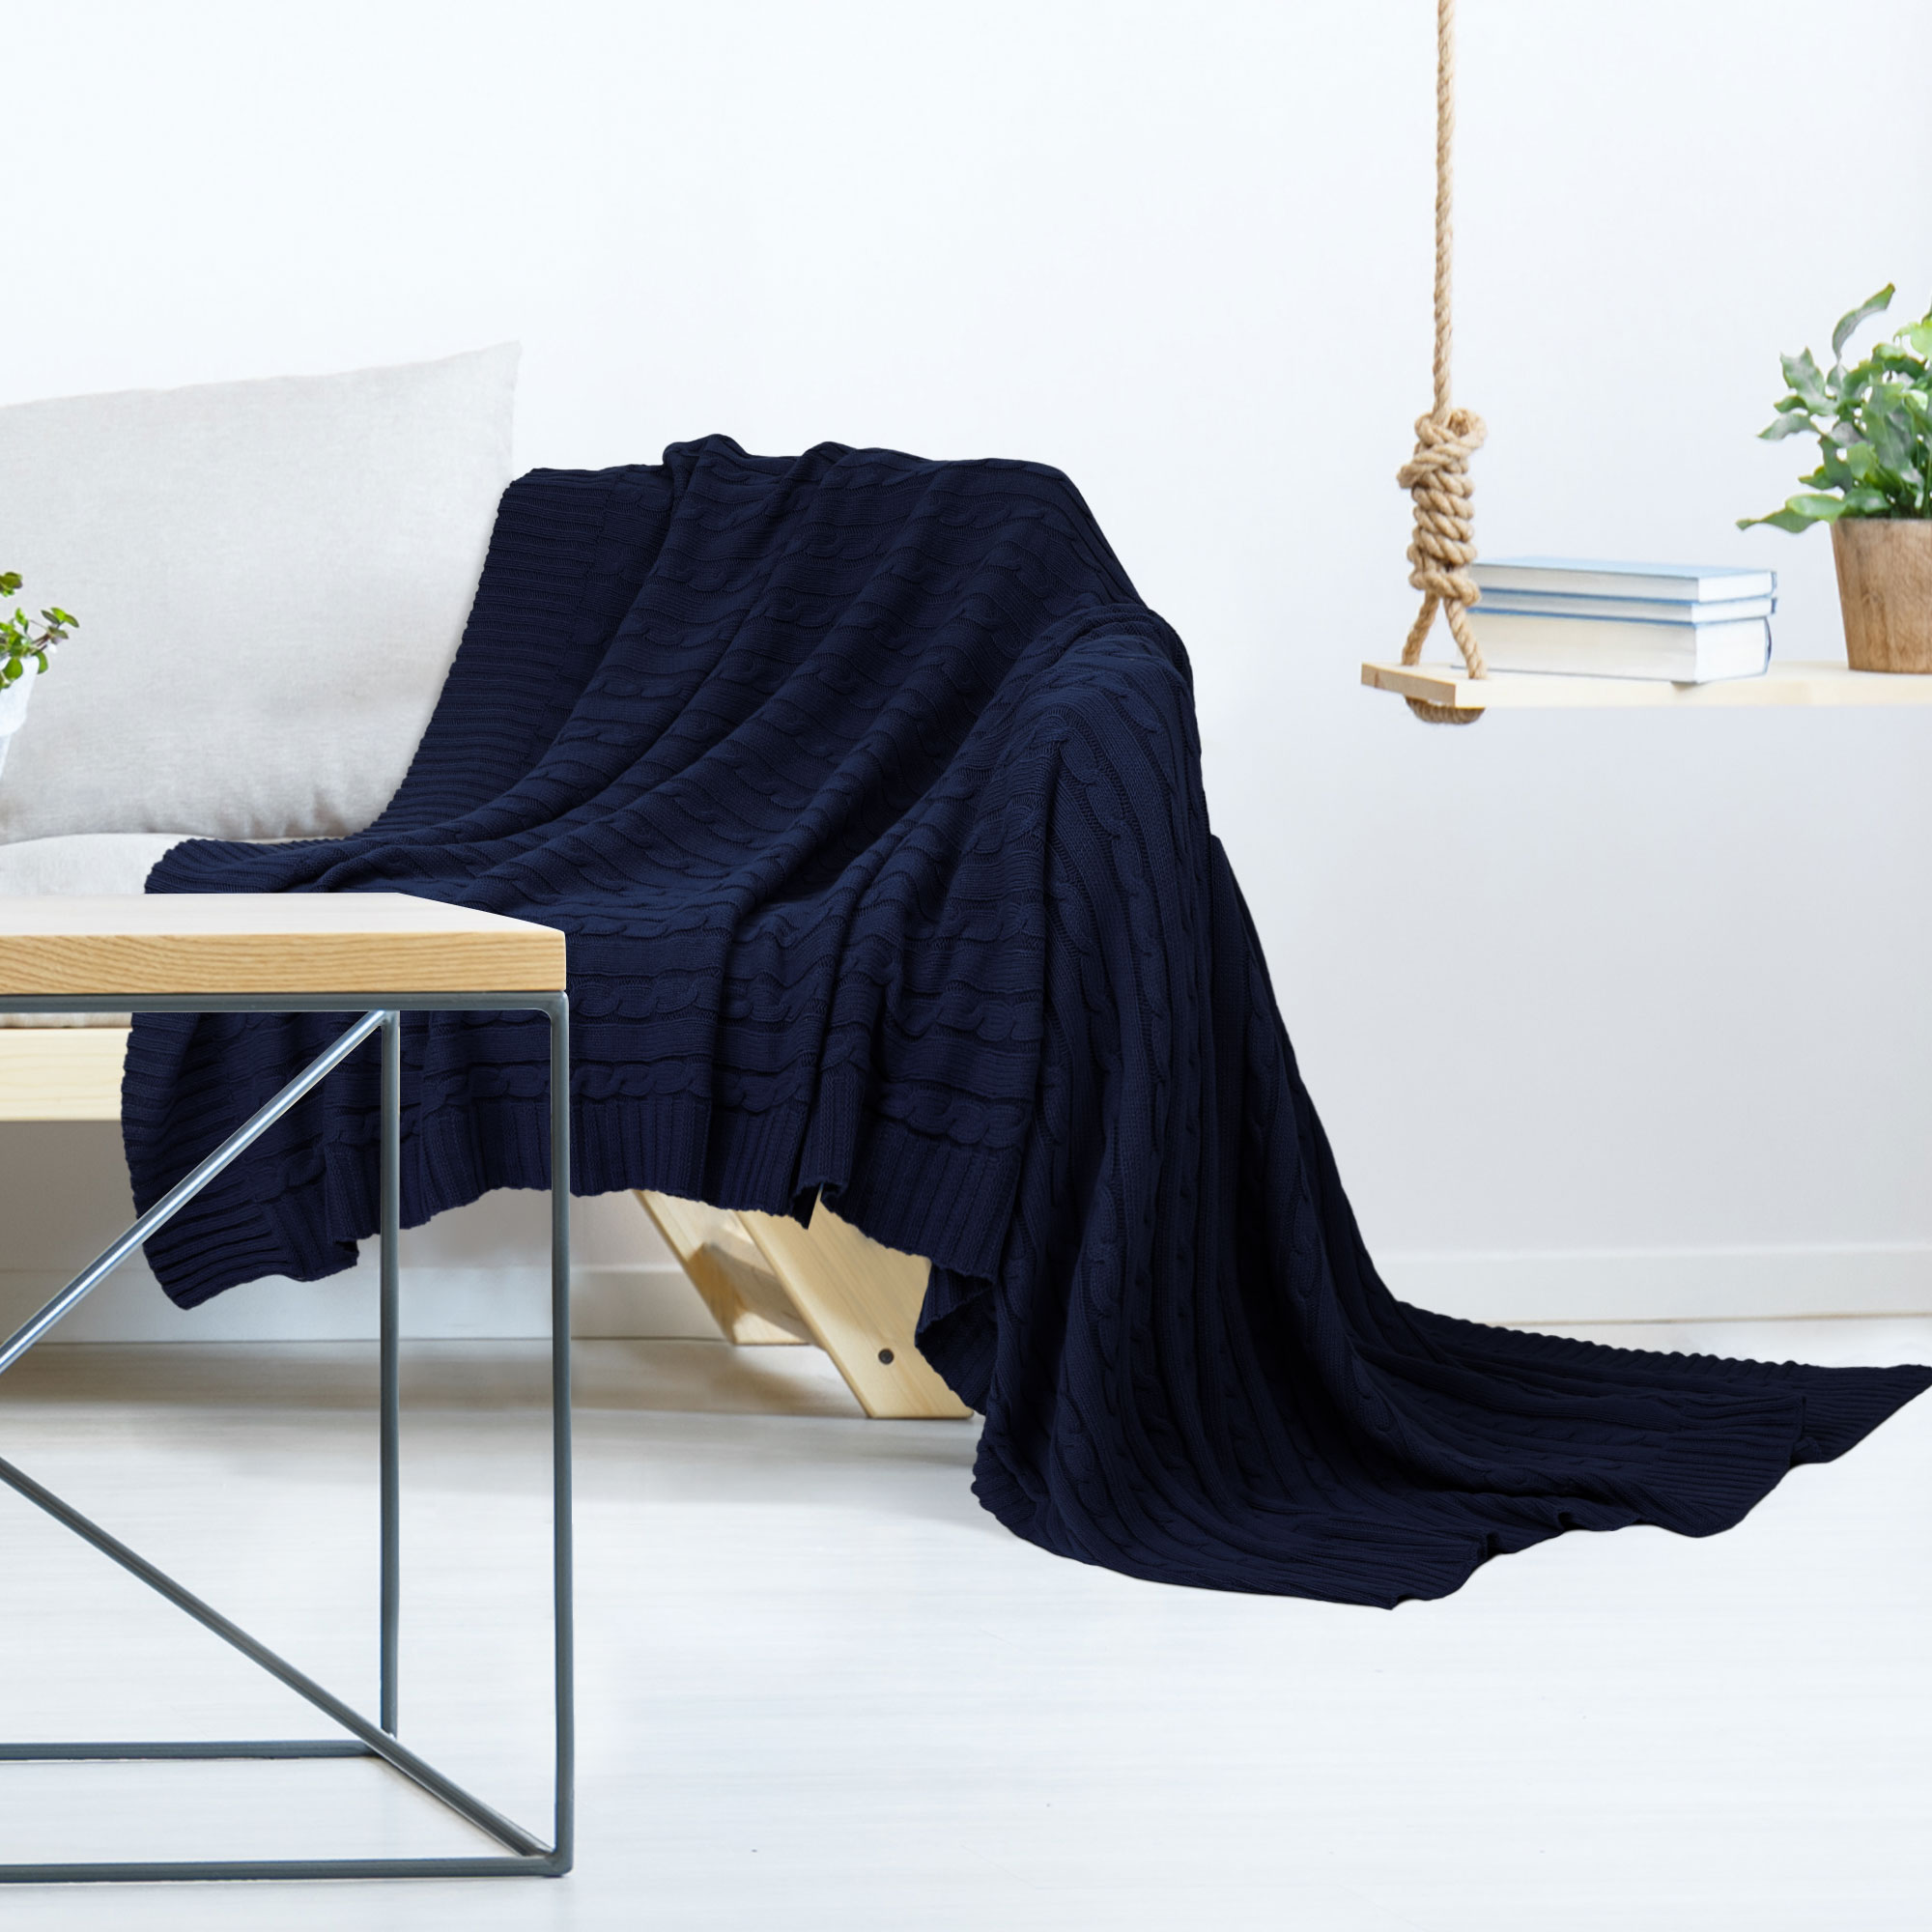 Soft-Knitted-Throw-Blanket-Bed-Sofa-Couch-Decorative-Cable-Knit-Pattern-Washable thumbnail 14